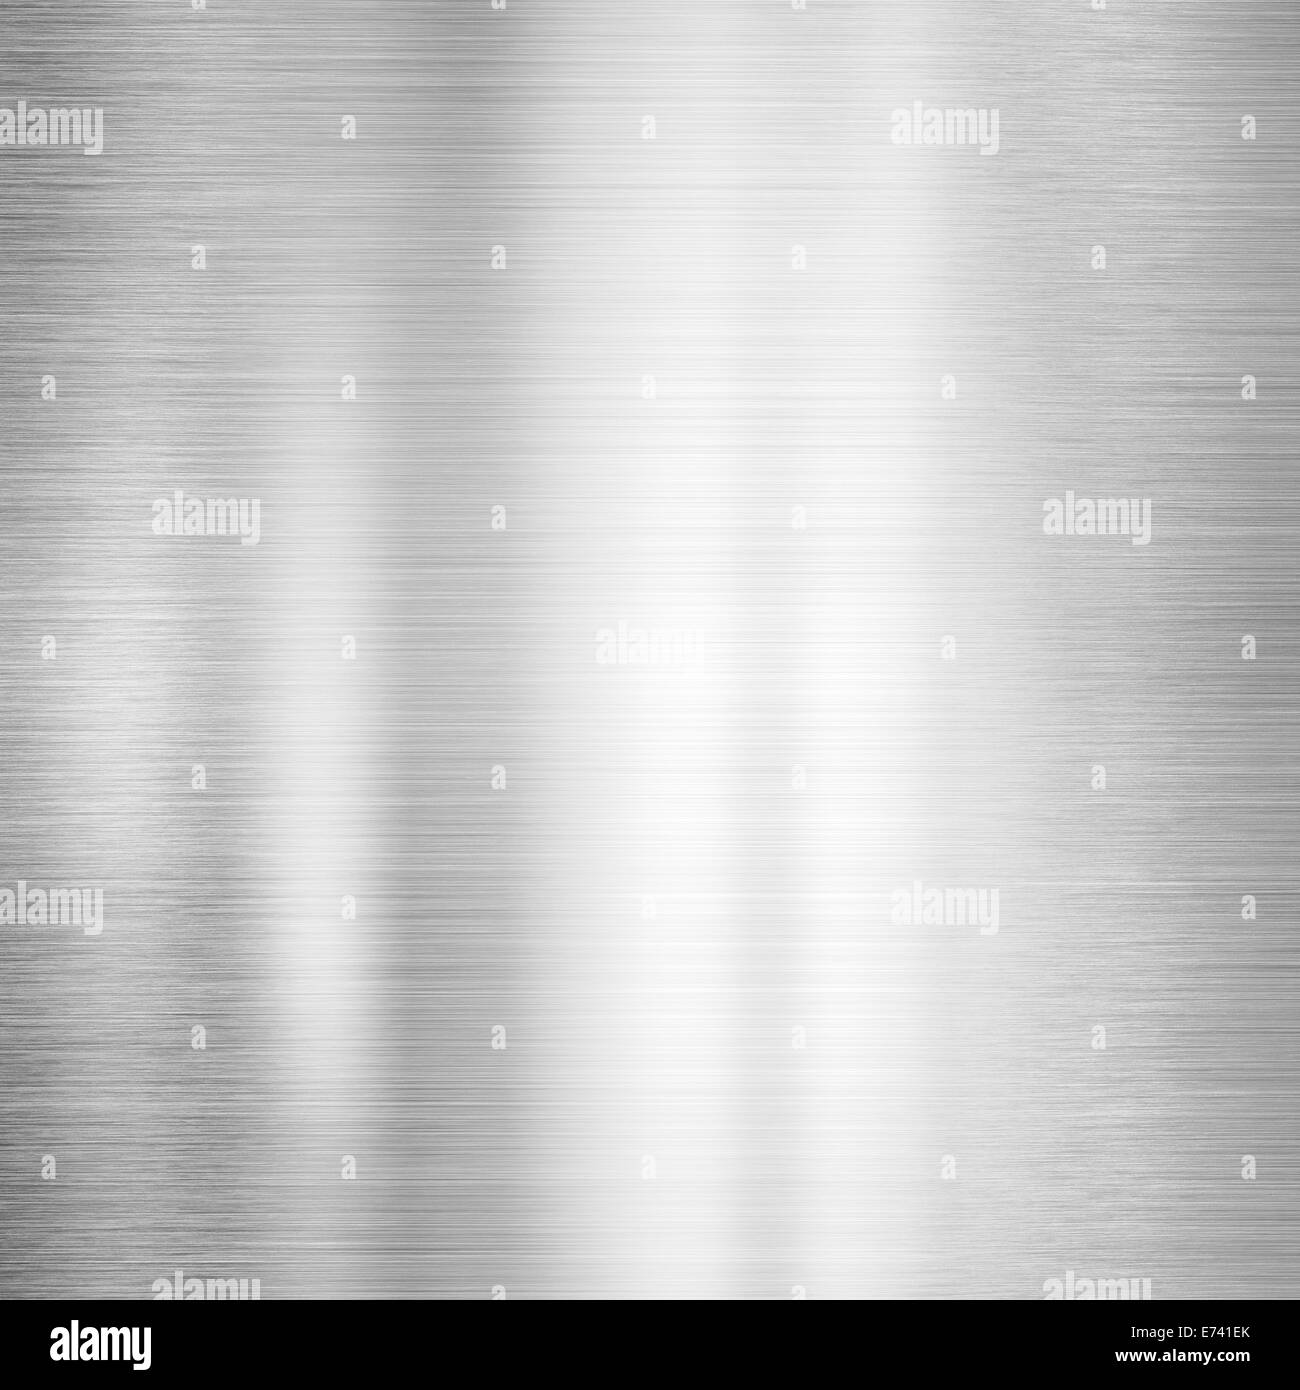 Steel brushed metal surface background - Stock Image